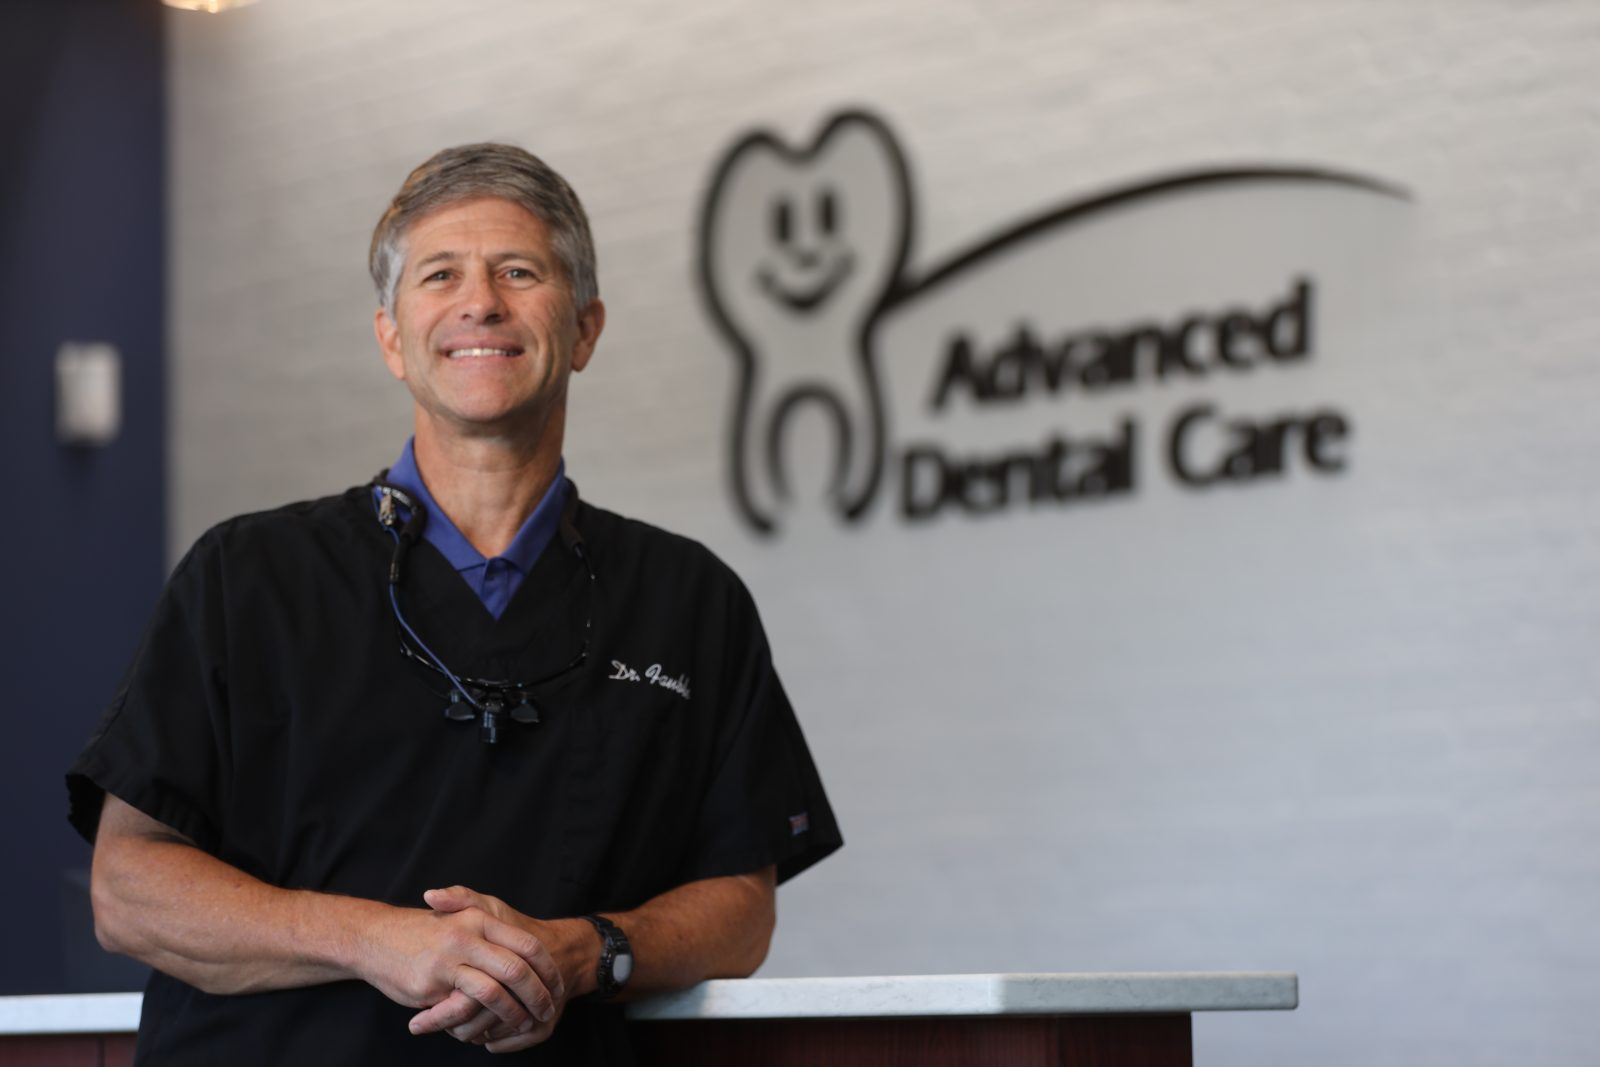 Dr. Curtis D. Fauble, DDS - Advanced Dental Care - Quincy, IL